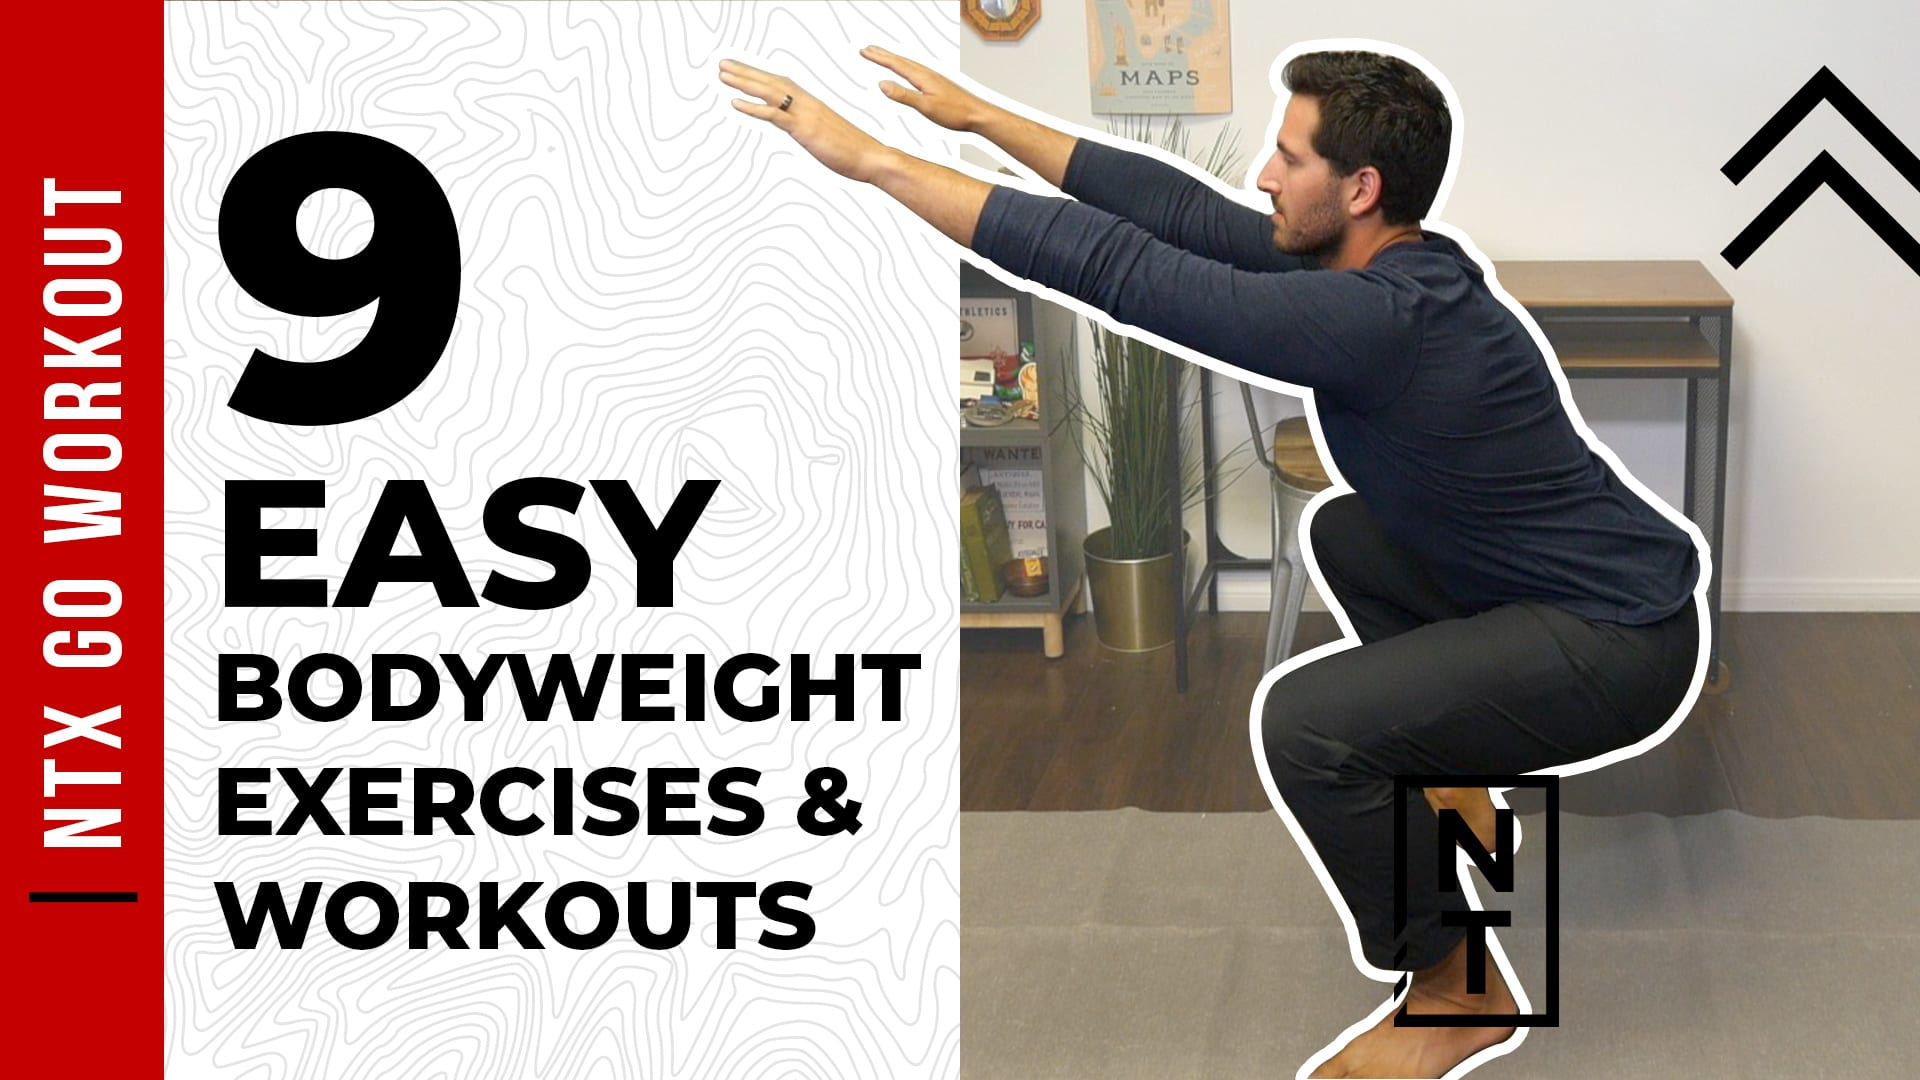 Doing a squat to show off some easy home bodyweight exercises